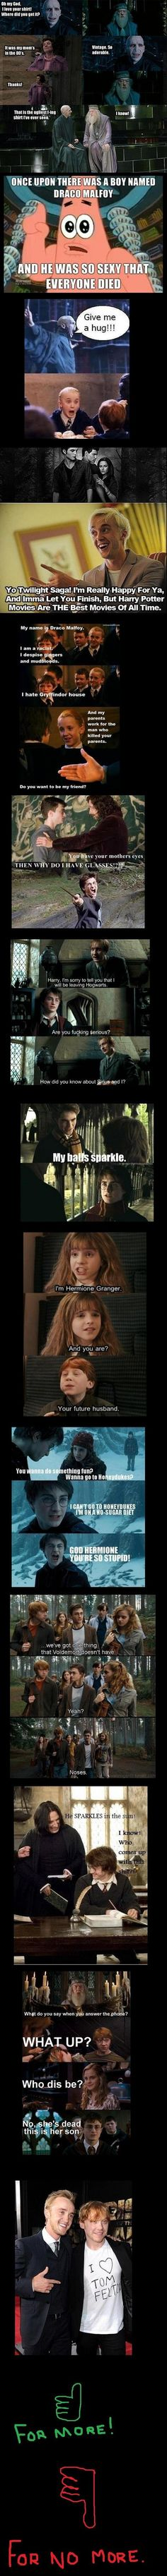 Harry Potter funnies featuring Mean Girls, Twilight, and Glee. Oh my GOSH! XD